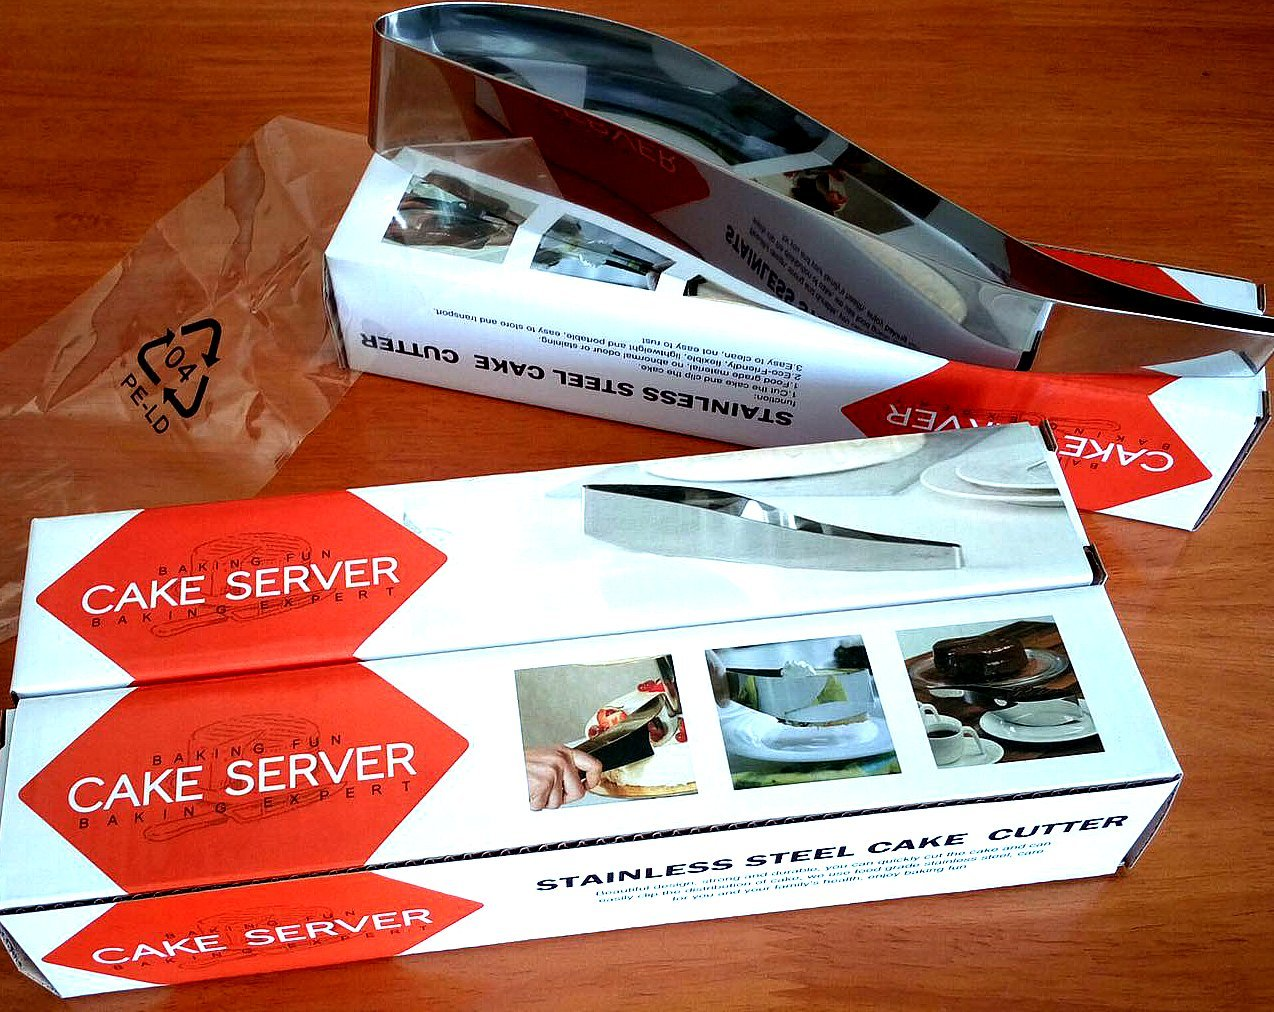 The MasDus | Best Cake Server | Pie Server | Cake Cutter | Cake cutter and Server Stainless Steel | Cake Slicer | Cake Lifter